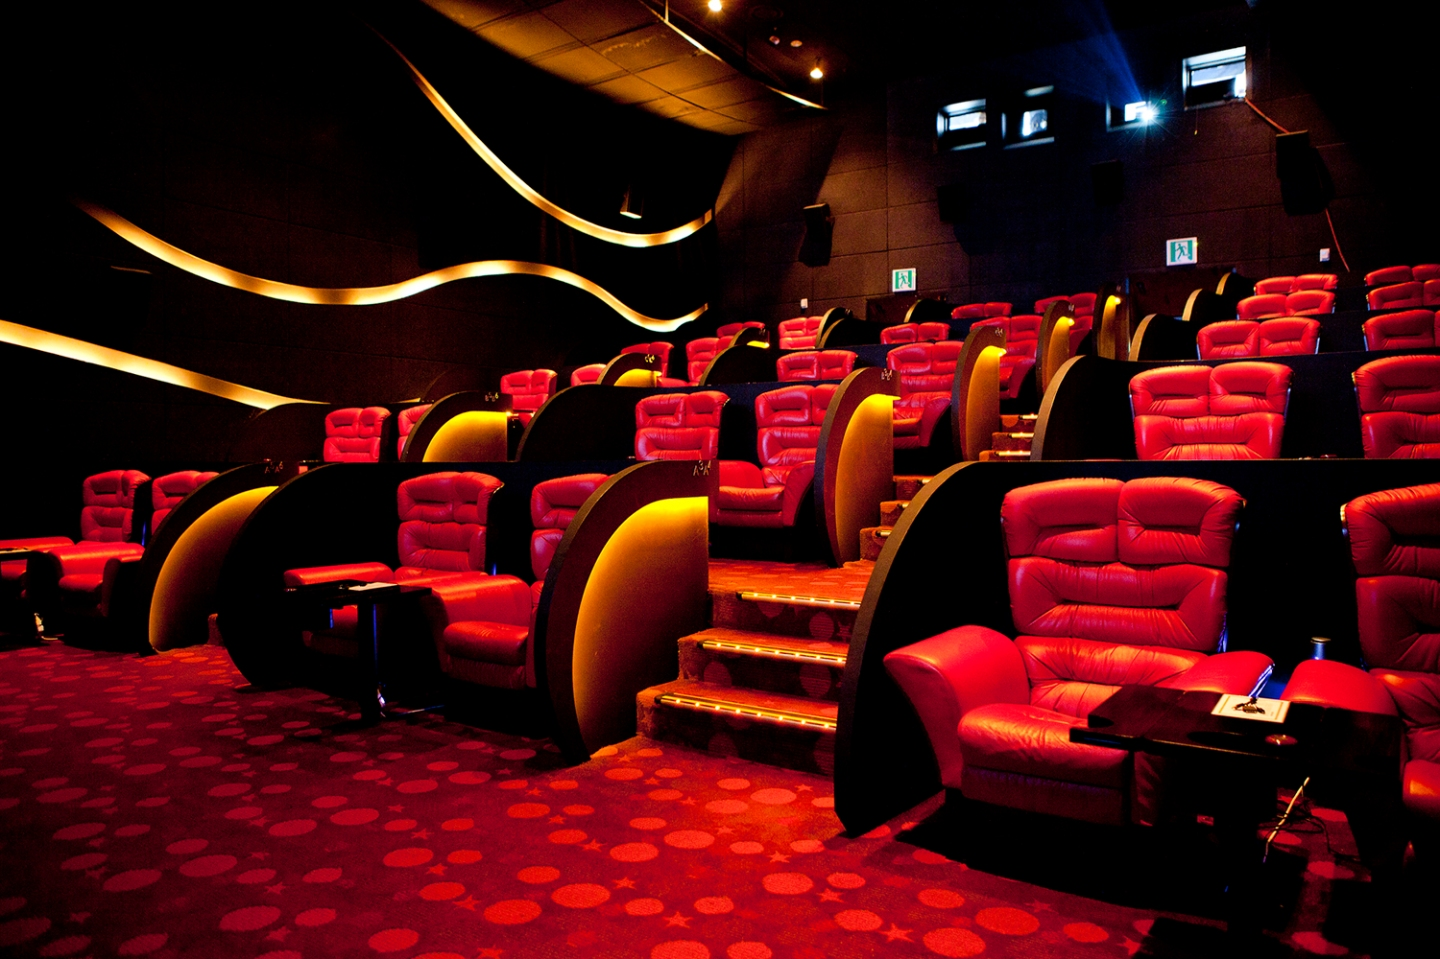 Cine-de-Chef-Seoul-South-Korea-luxury-cinema